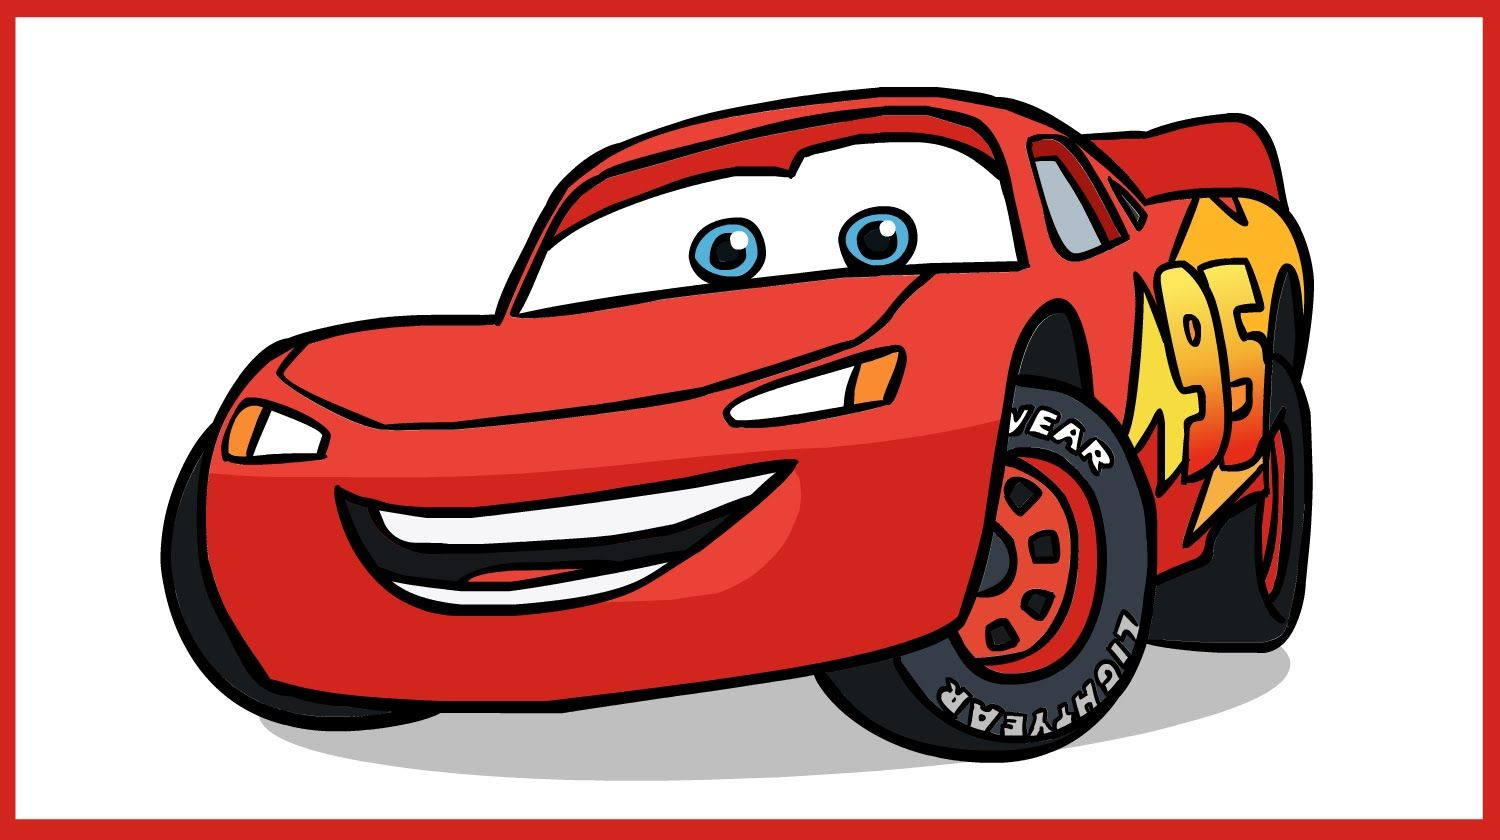 How To Draw Lightning Mcqueen Cars Disney Pixar With Images